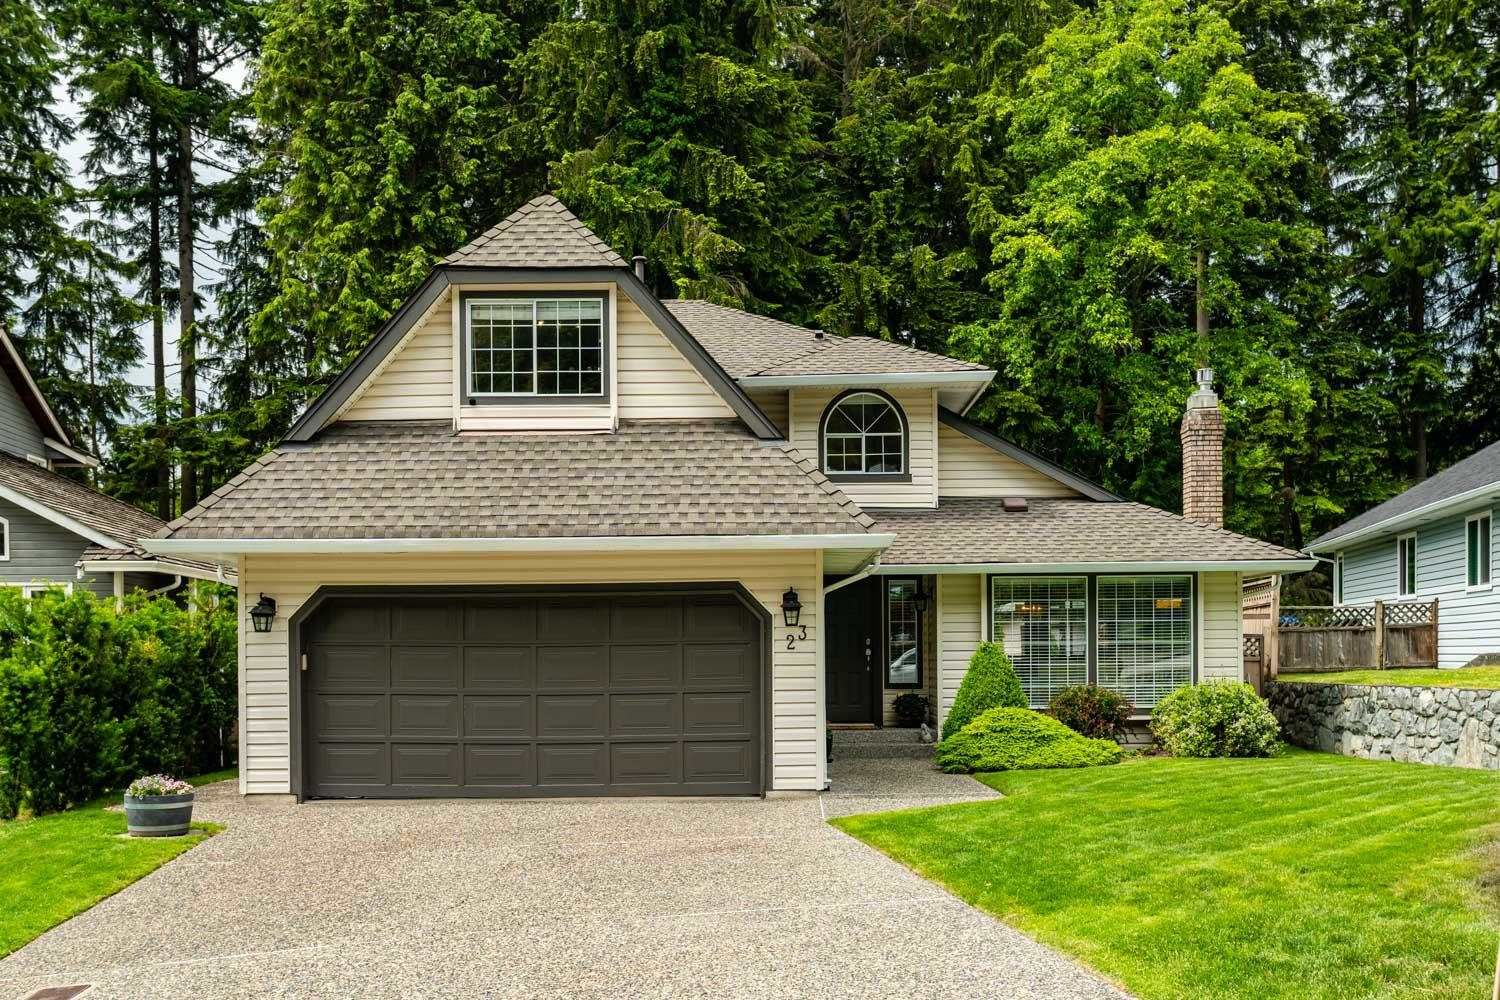 Main Photo: 23 FLAVELLE Drive in Port Moody: Barber Street House for sale : MLS®# R2599334